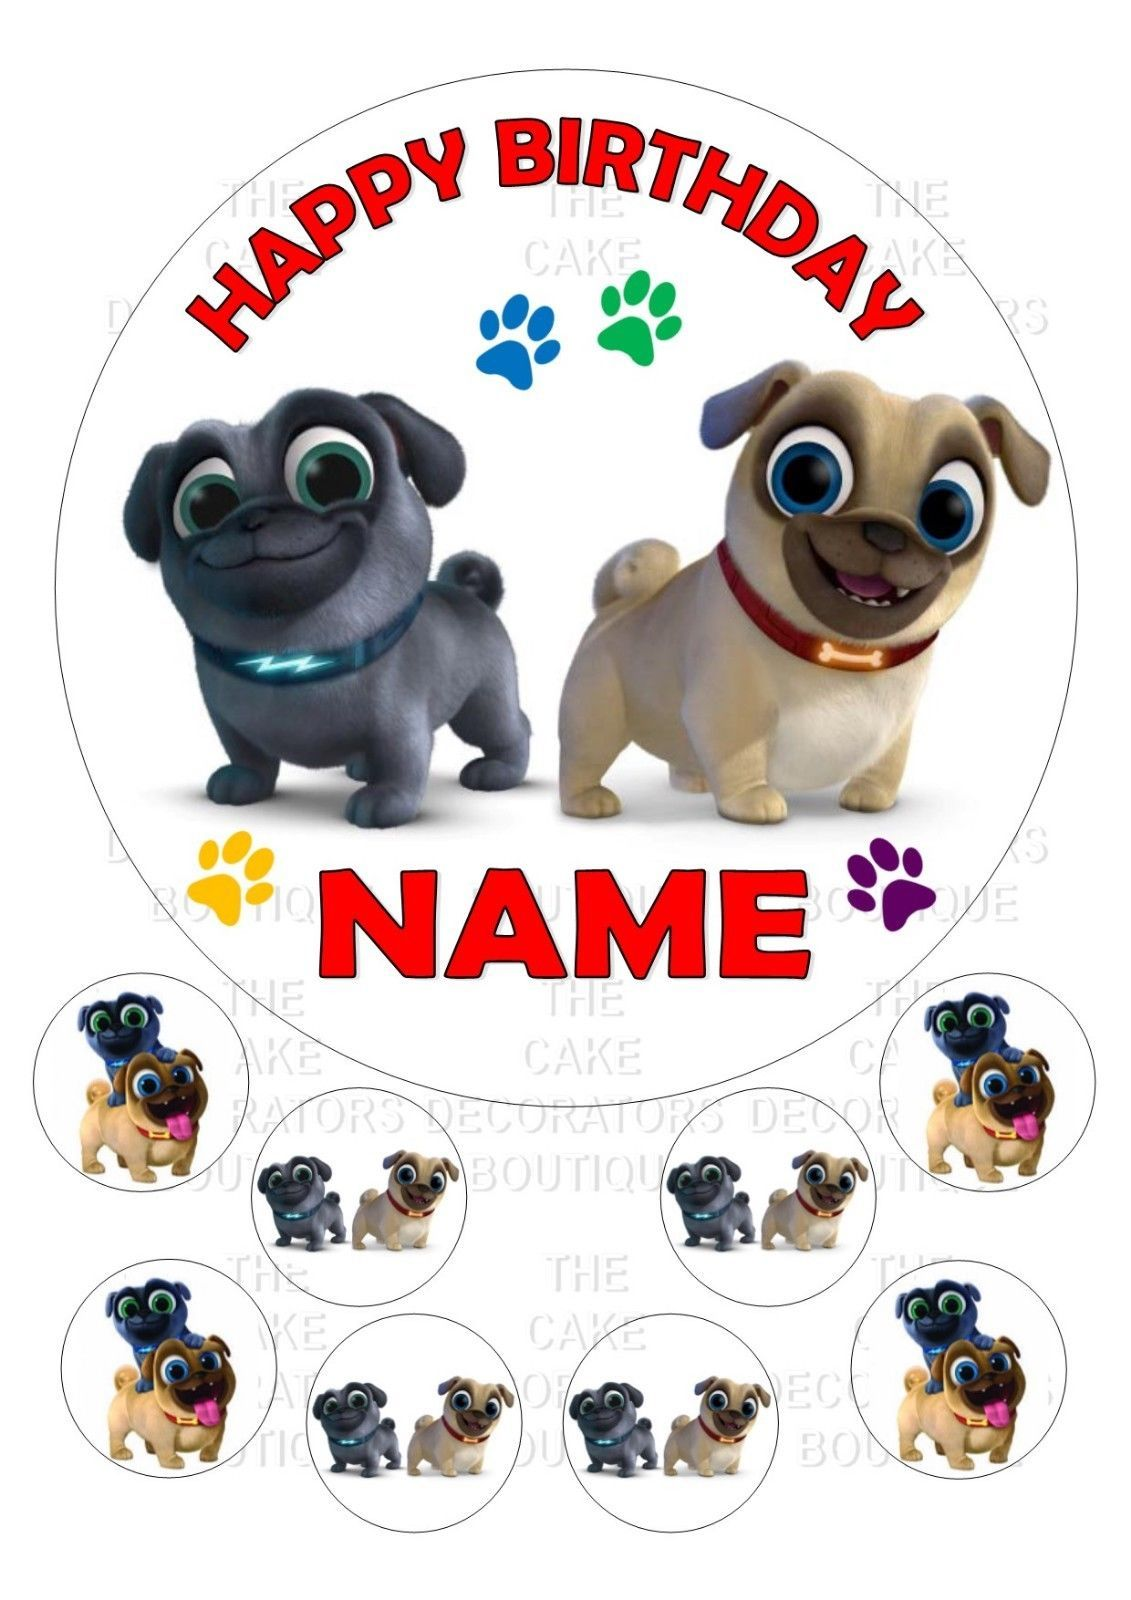 Puppy Dog Pals Round Iced Icing Personalised Cake Topper 7 5 8 Cupcake Tops Ebay Home Garden Puppy Birthday Dog Party Dogs And Puppies